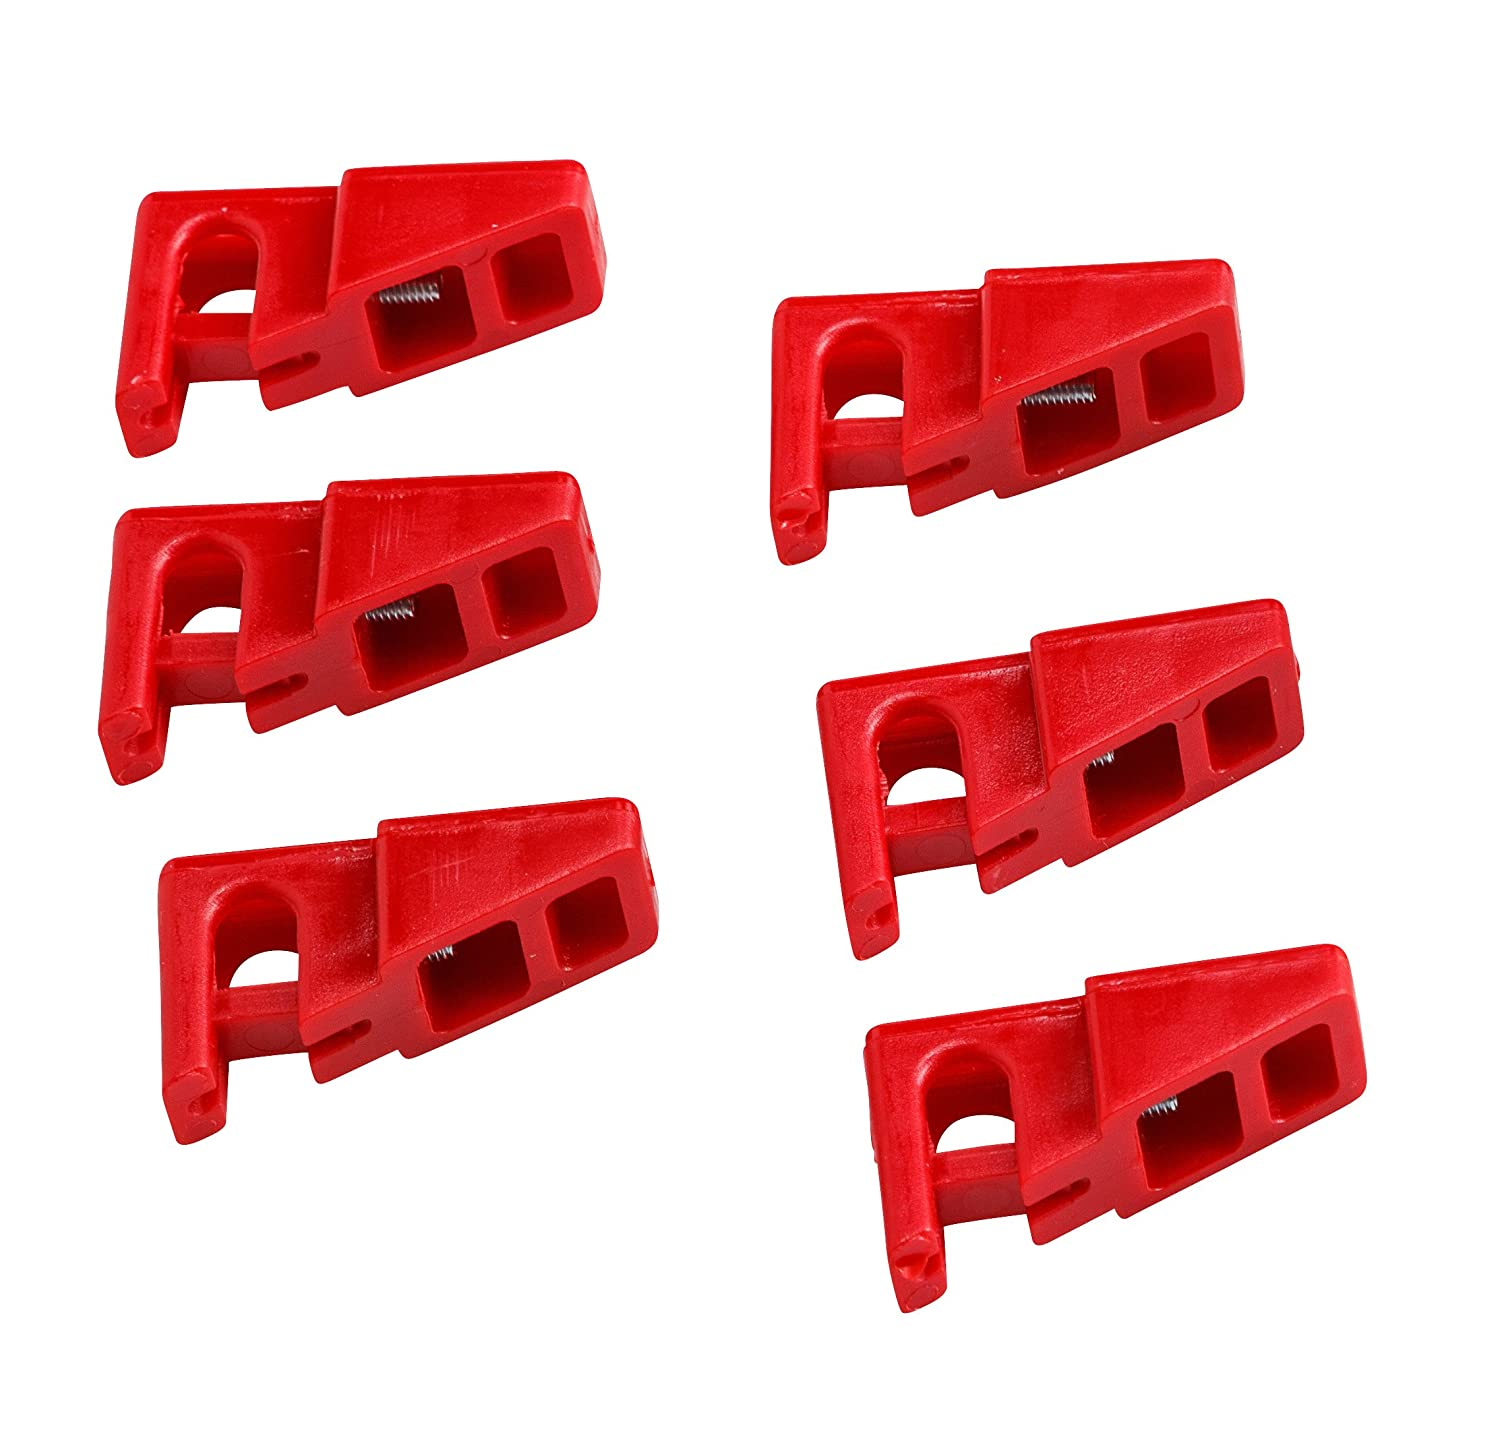 Brady BL04-6 Prinzing No Hole Breaker Lockout 6 Pack